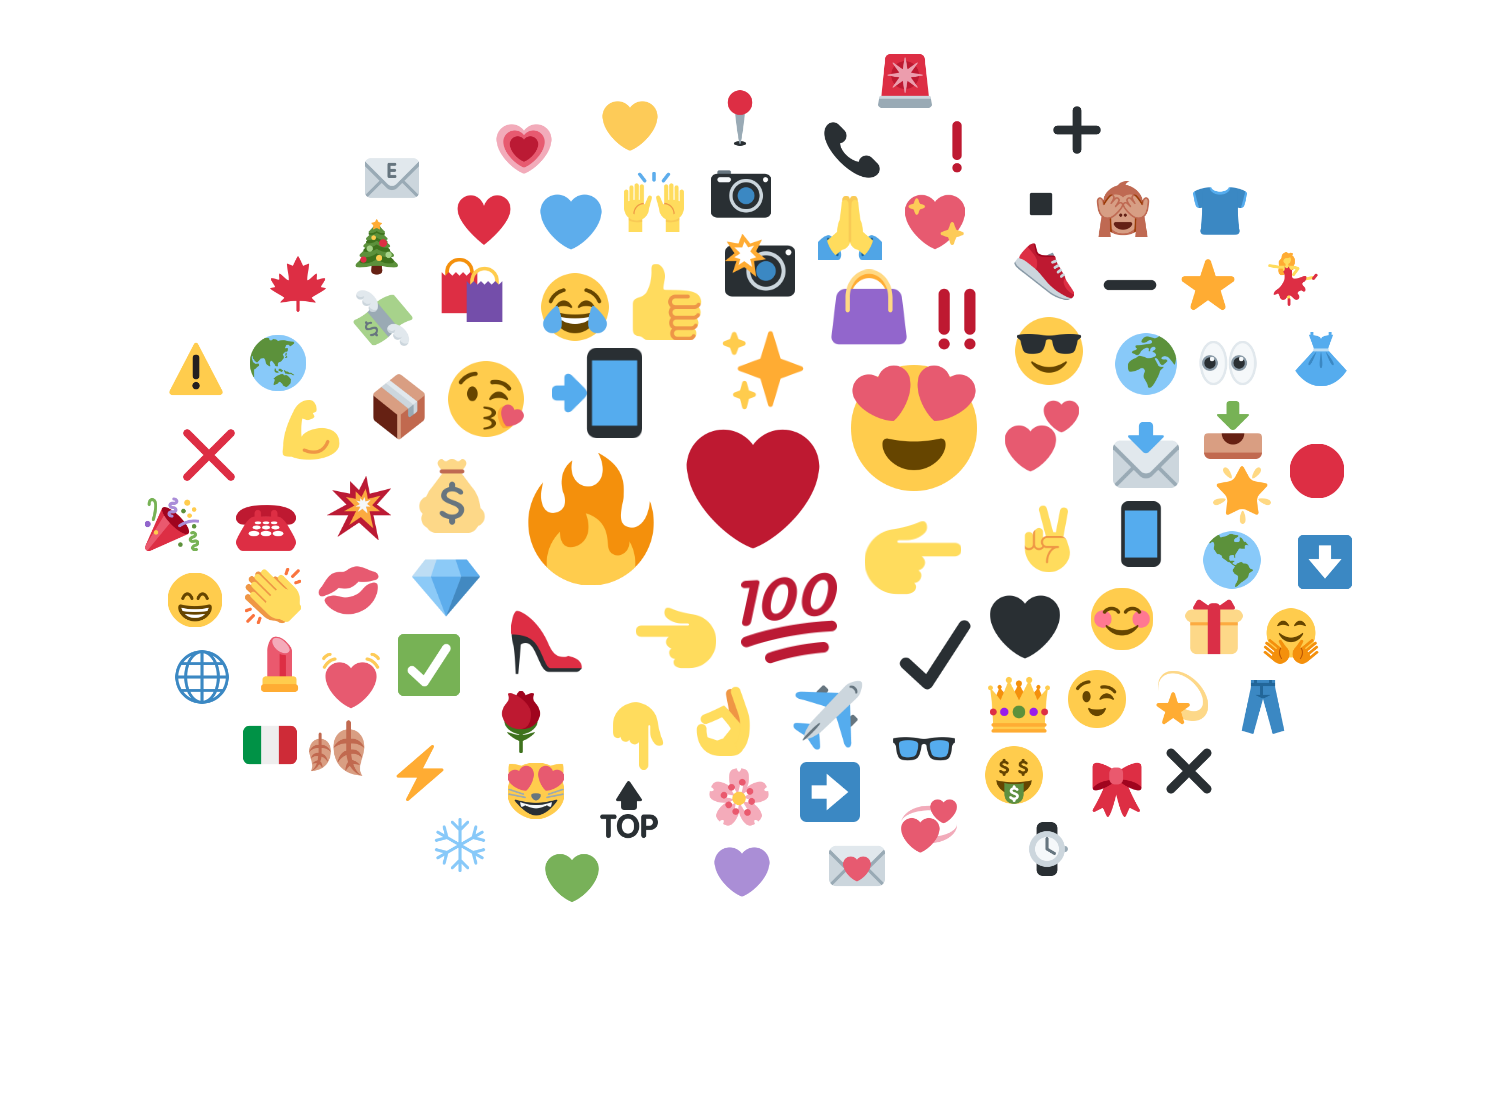 Most used emojis for fashion brands